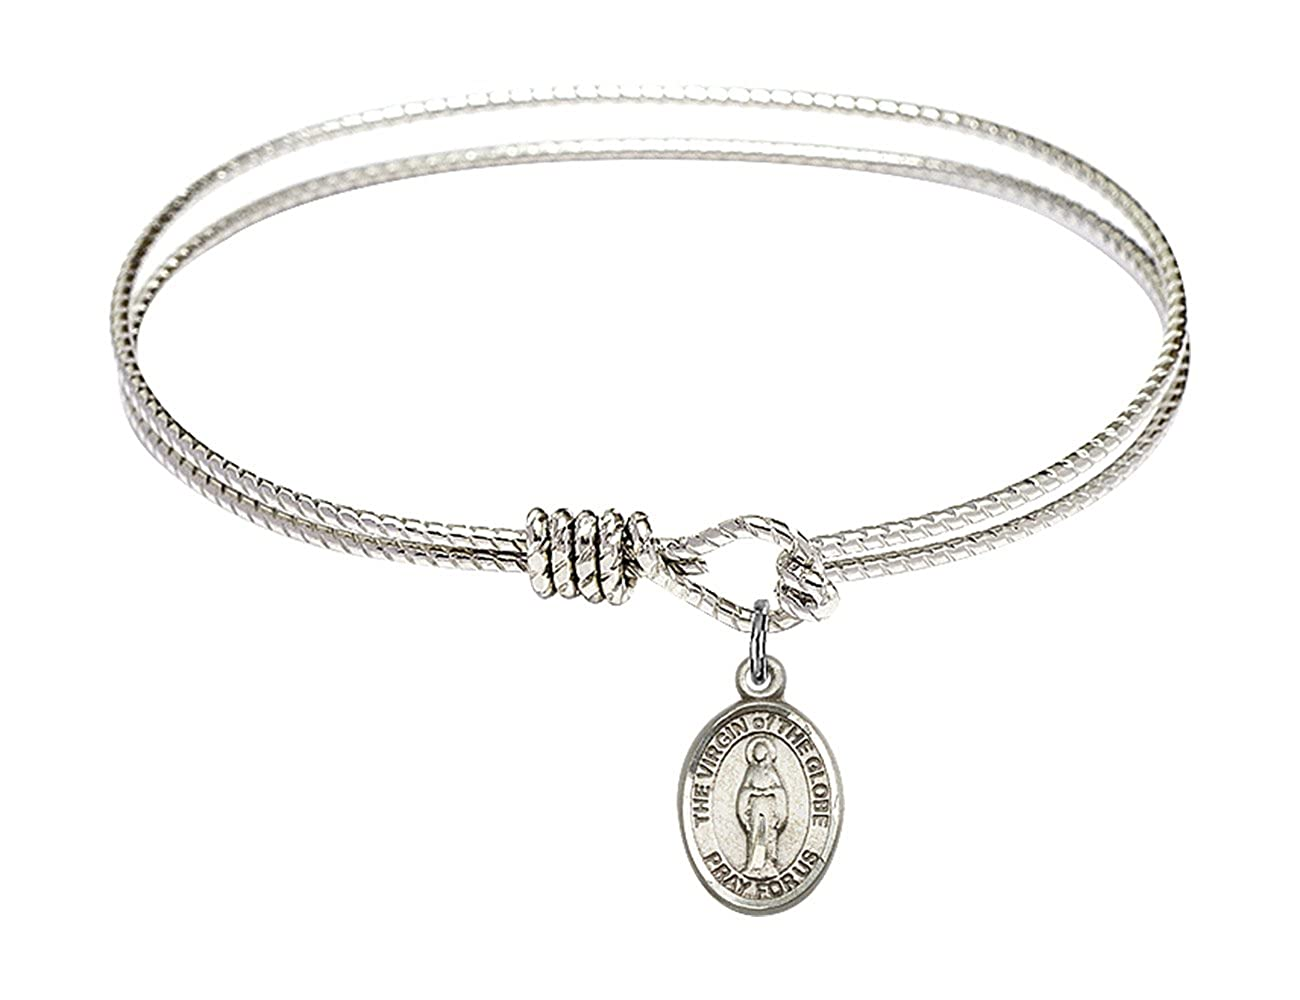 DiamondJewelryNY Eye Hook Bangle Bracelet with a Virgin of The Globe Charm.